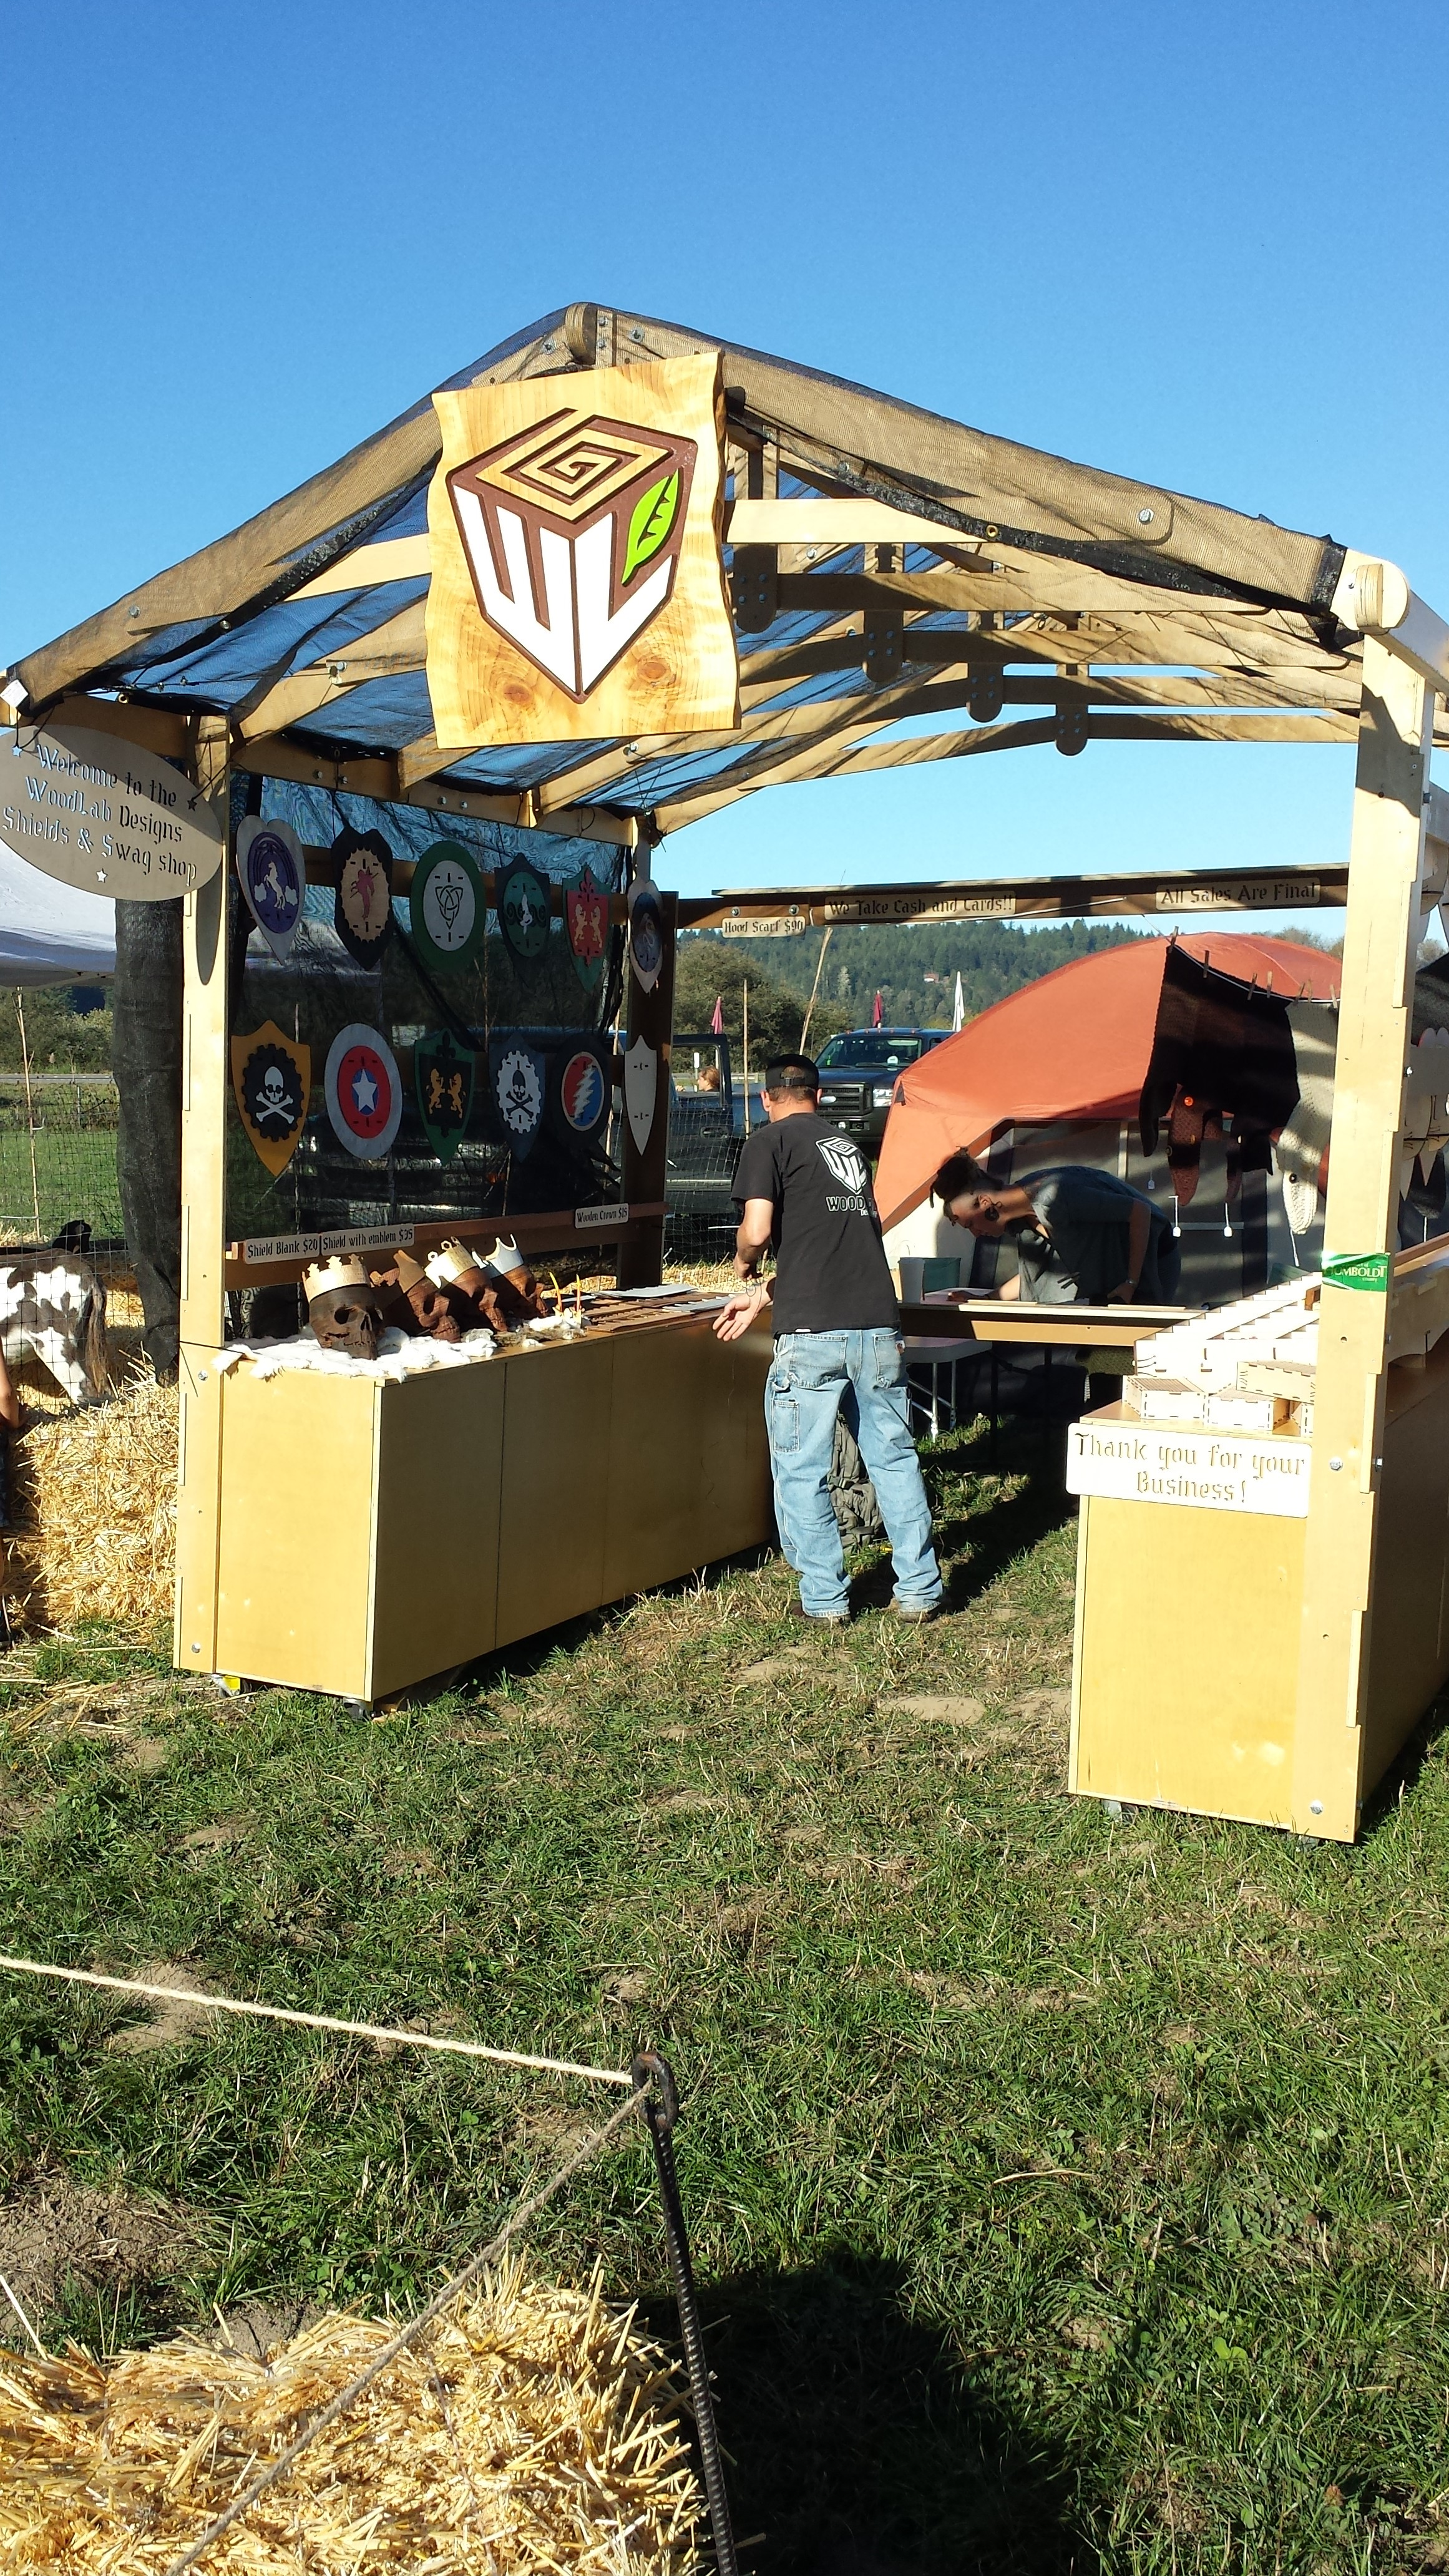 Renaissance Fair Custom Craft Booth with Shields, Skulls